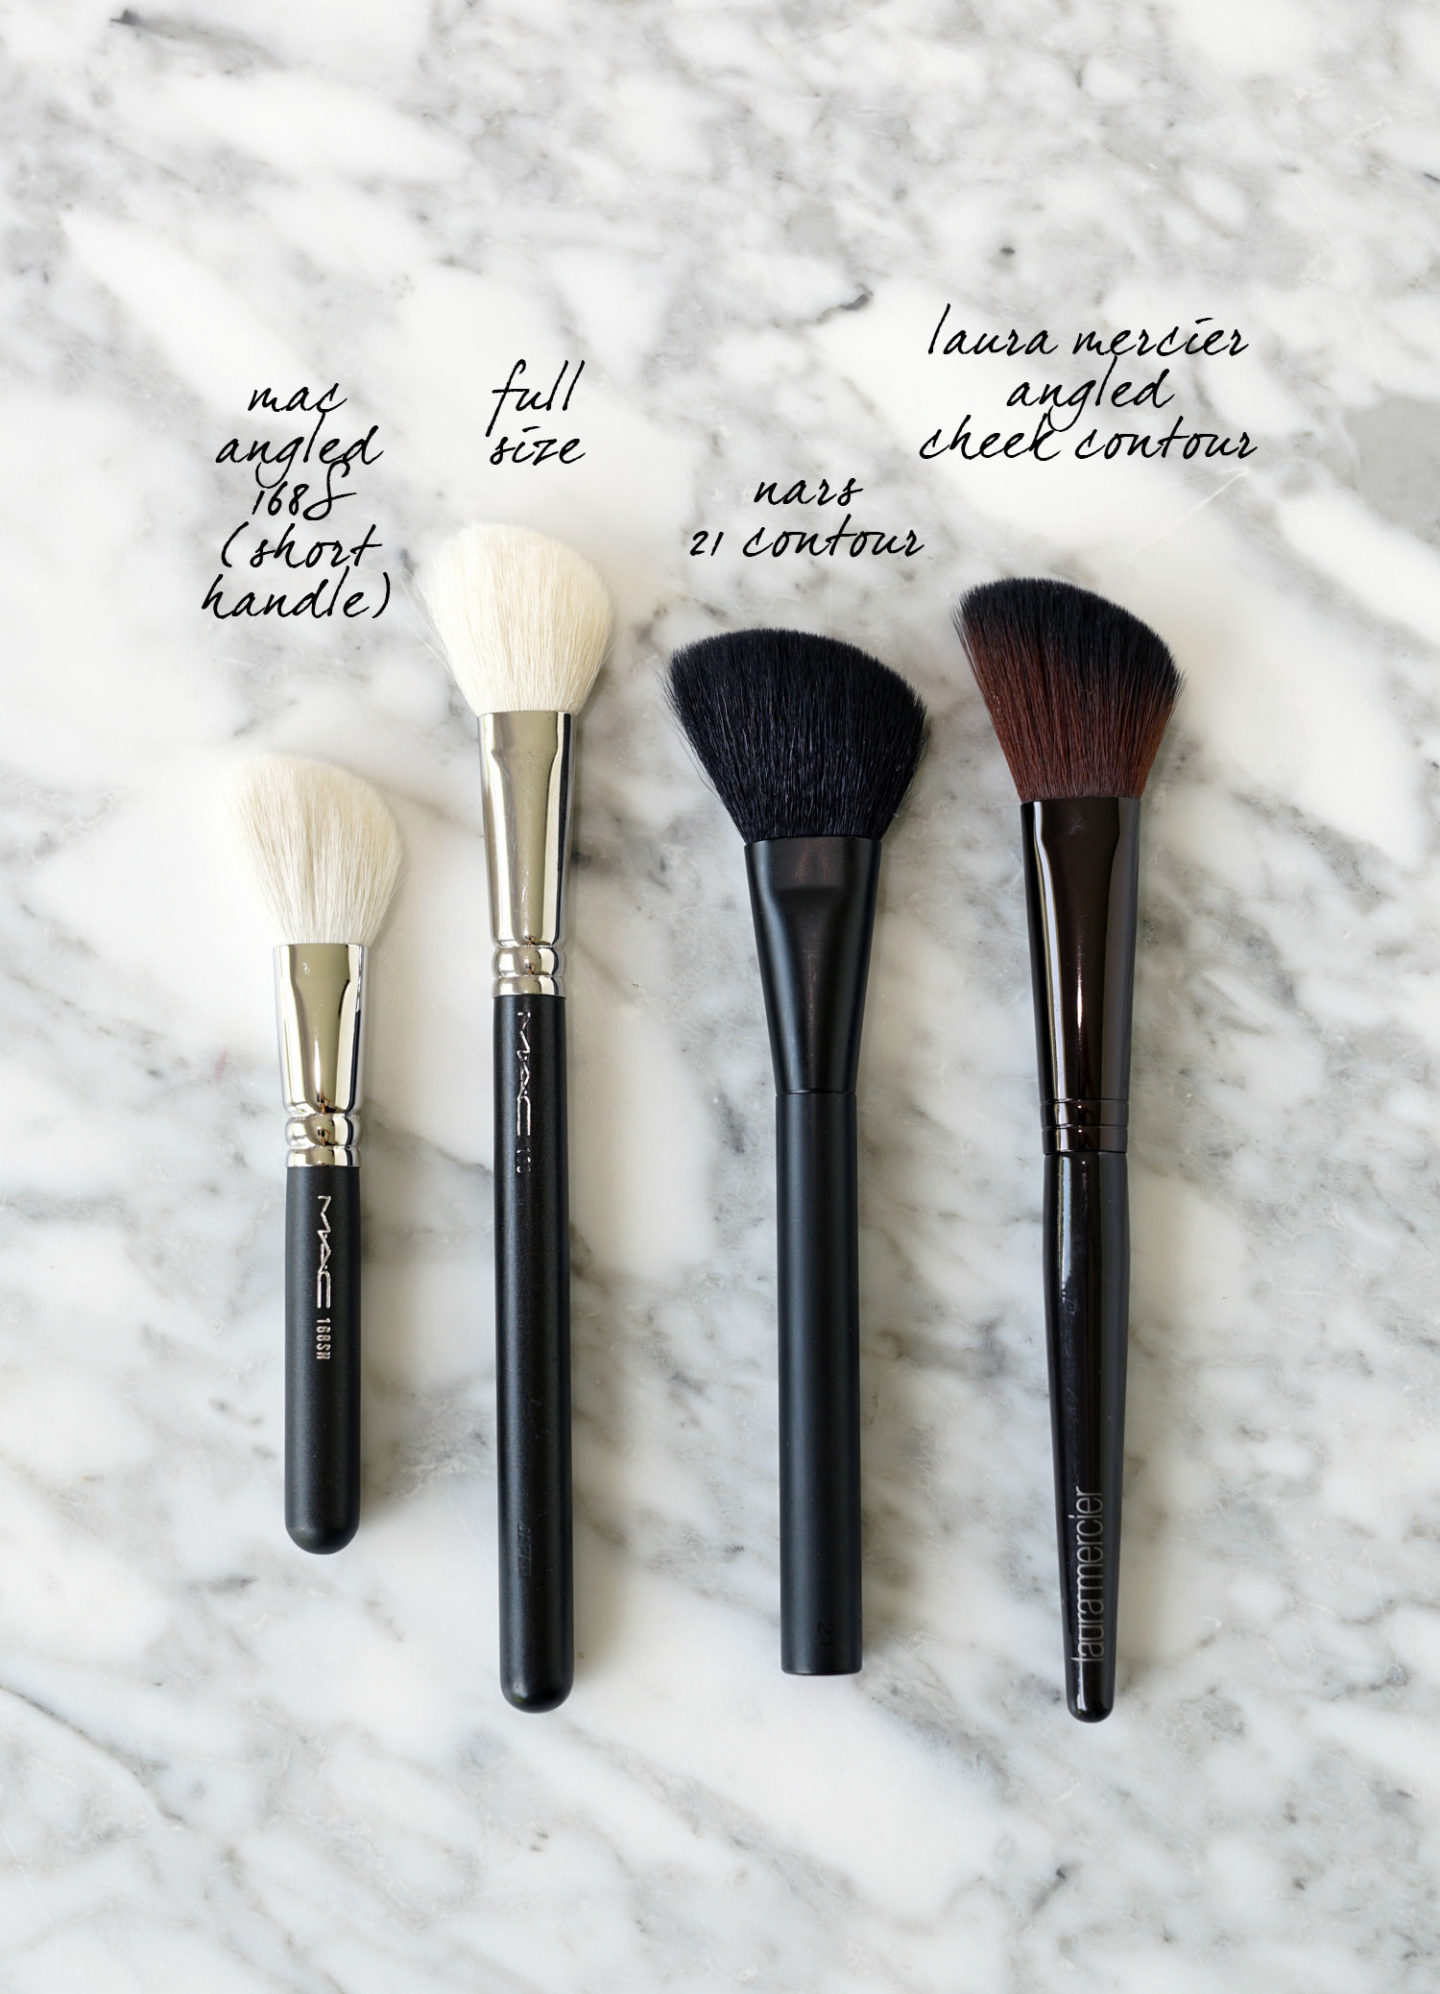 Favorite Angled Makeup Brushes